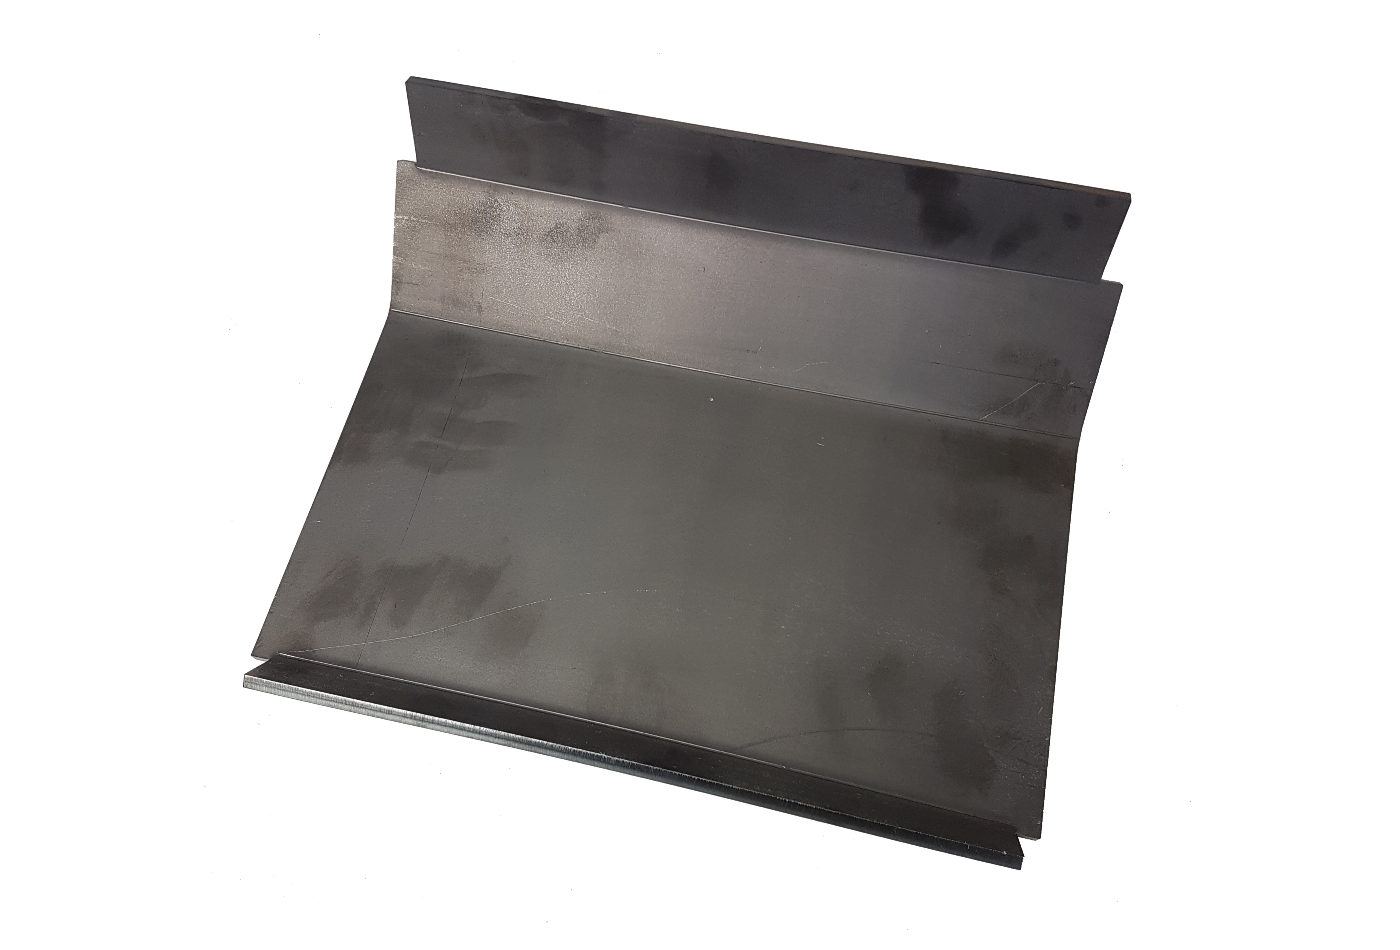 A replacement Baffle suitable for Merlin Midline stoves.